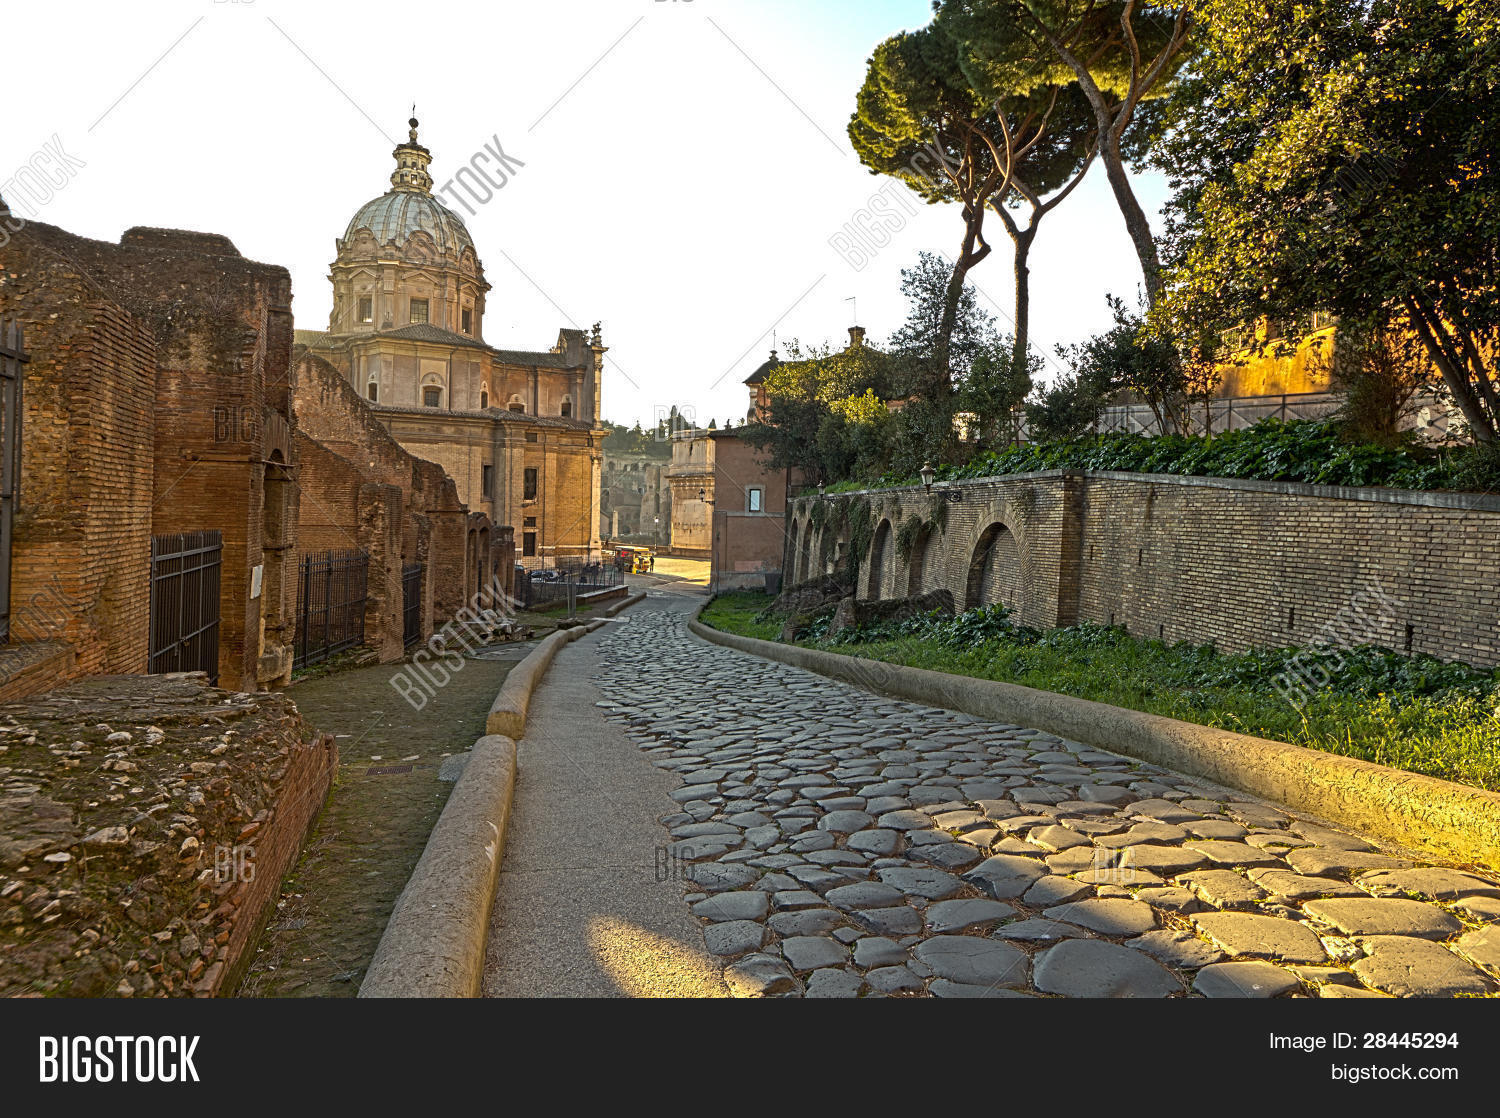 Old Street In Rome Stock Photo - Image: 35089160